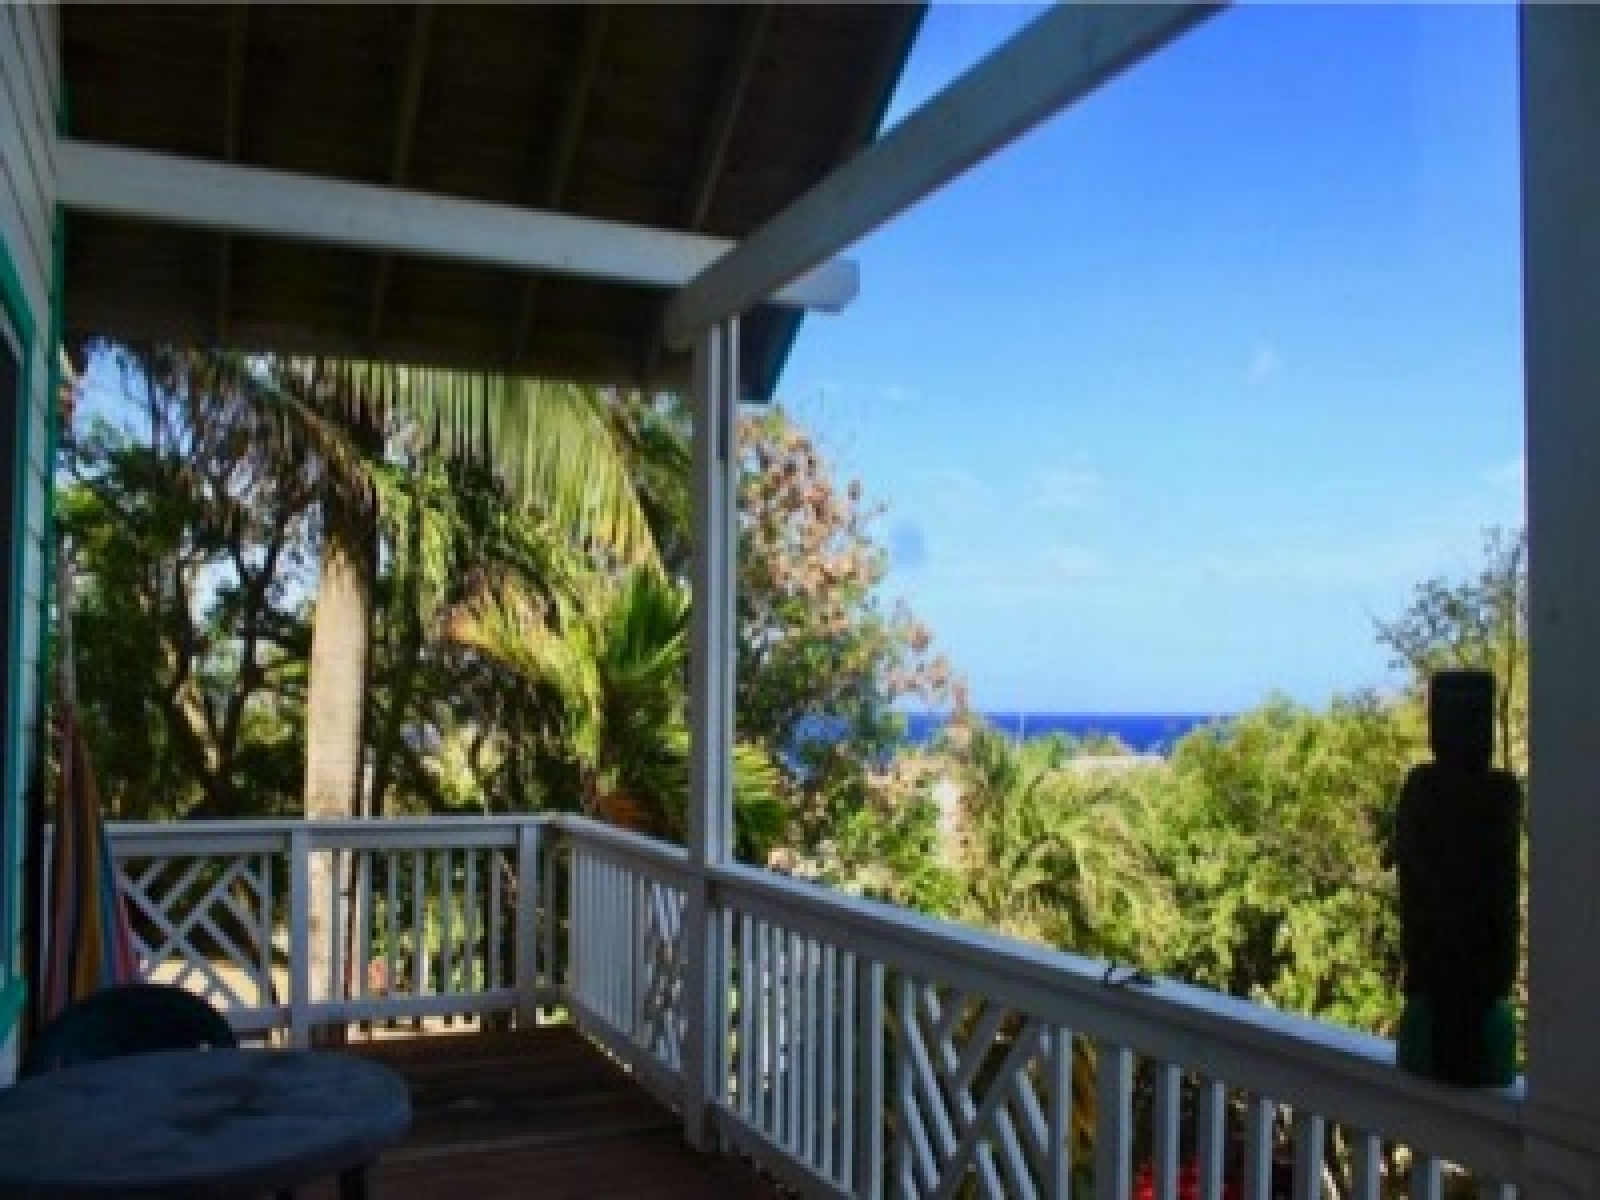 Relax and enjoy the views of the ocean, the cool breezes and the peace and quiet.